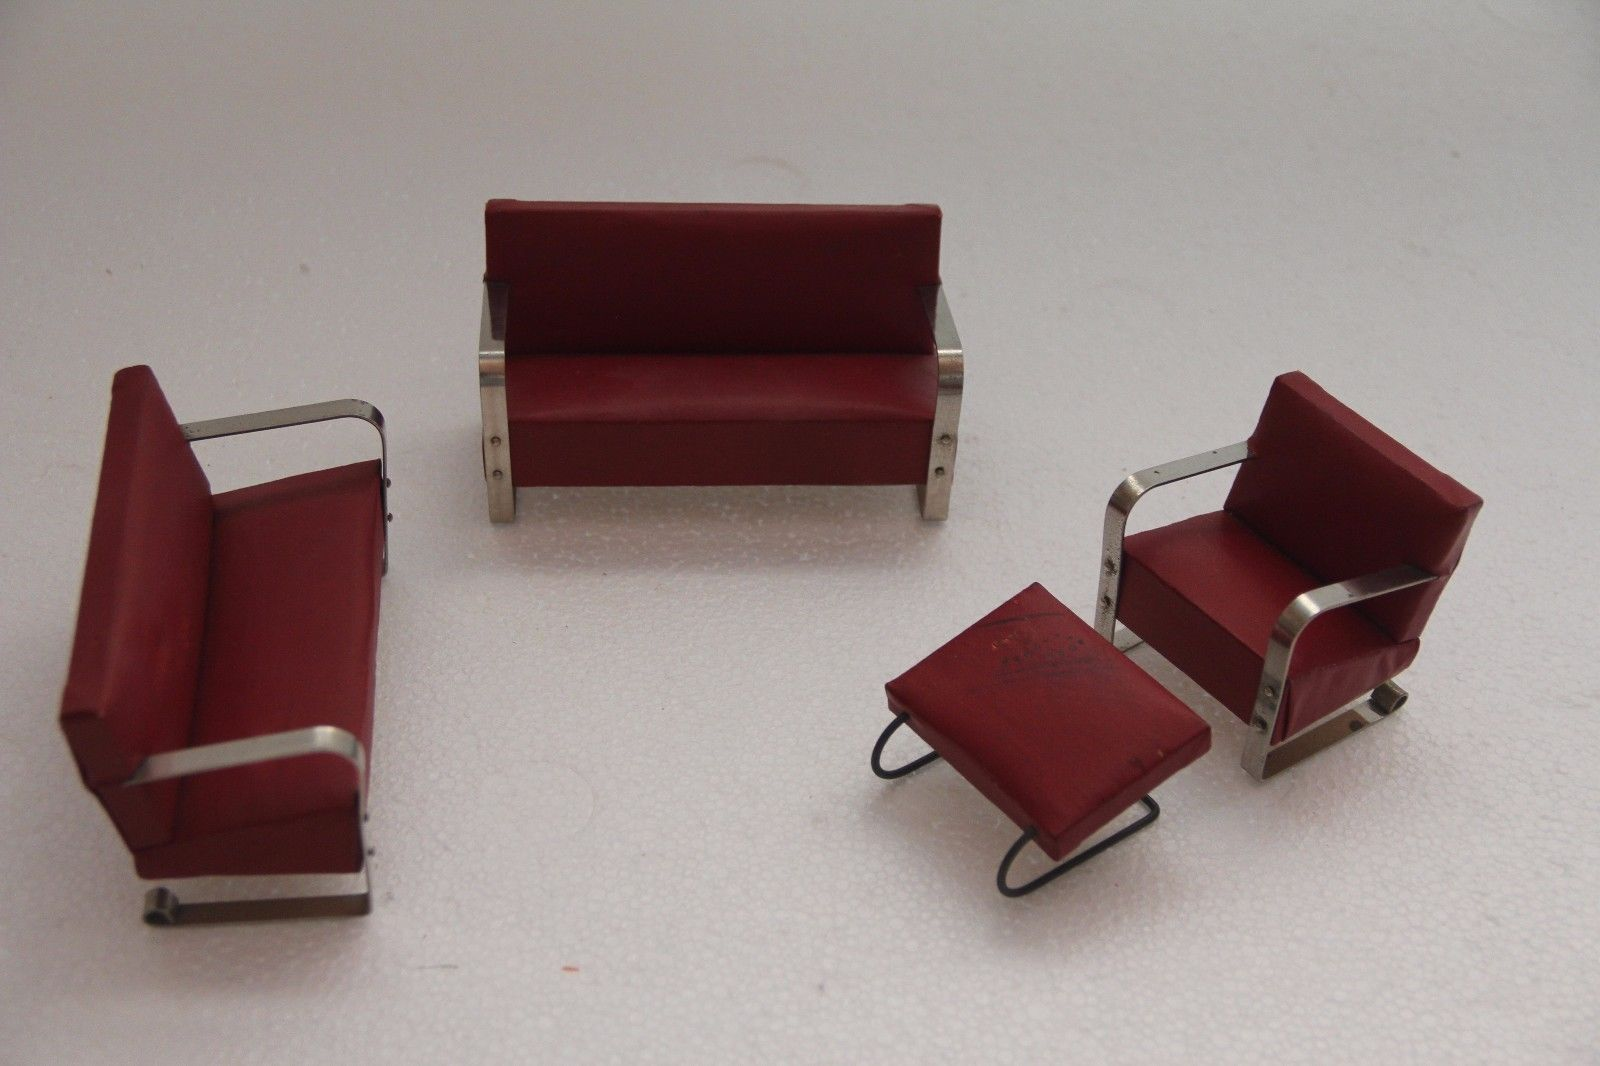 Miniature Midcentury Modern Furniture Classics In Plan Toys